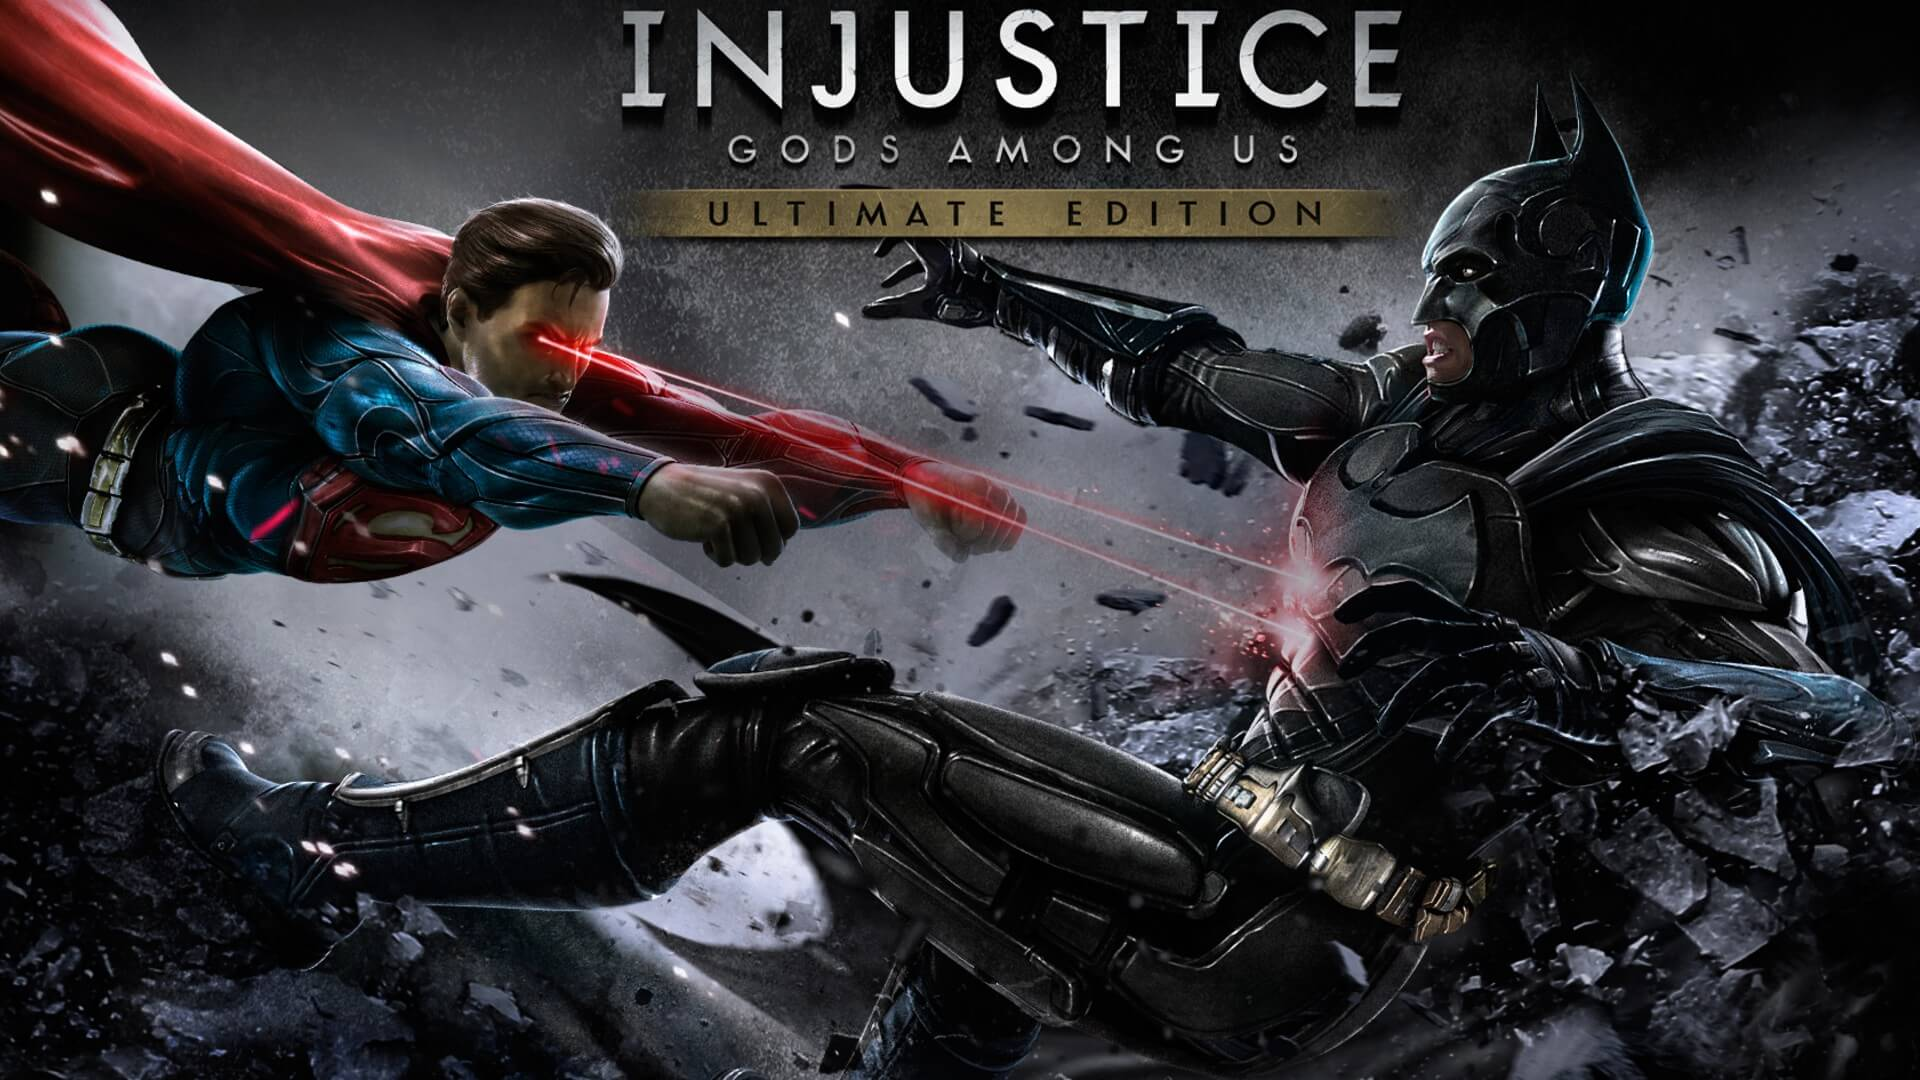 Grab an Injustice: Gods Among Us Ultimate Edition free copy by June 25